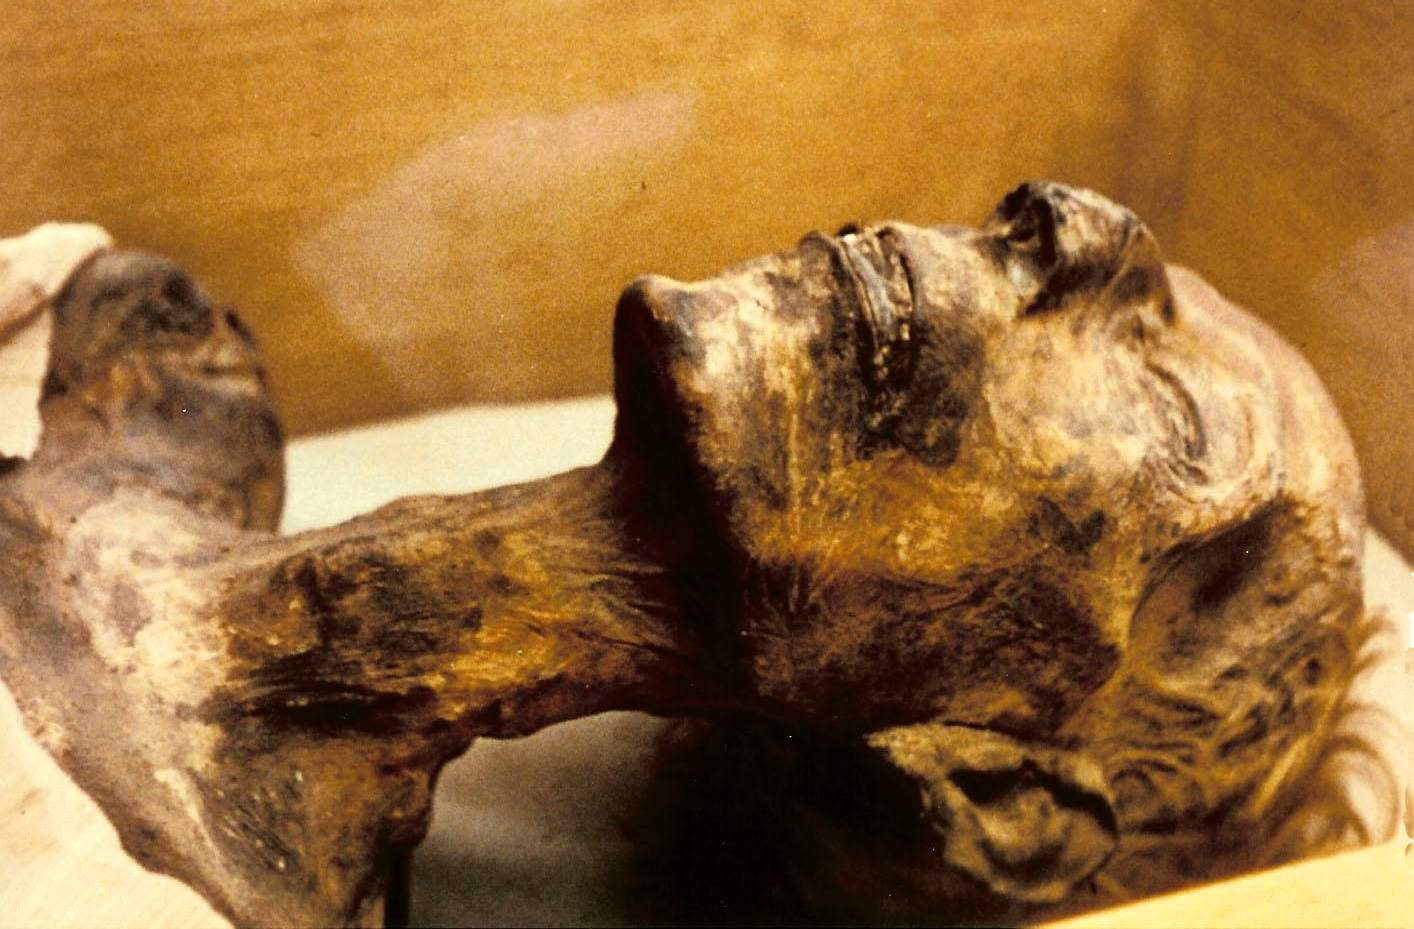 21 incredibly well-preserved human bodies that survived the ages astonishingly 14